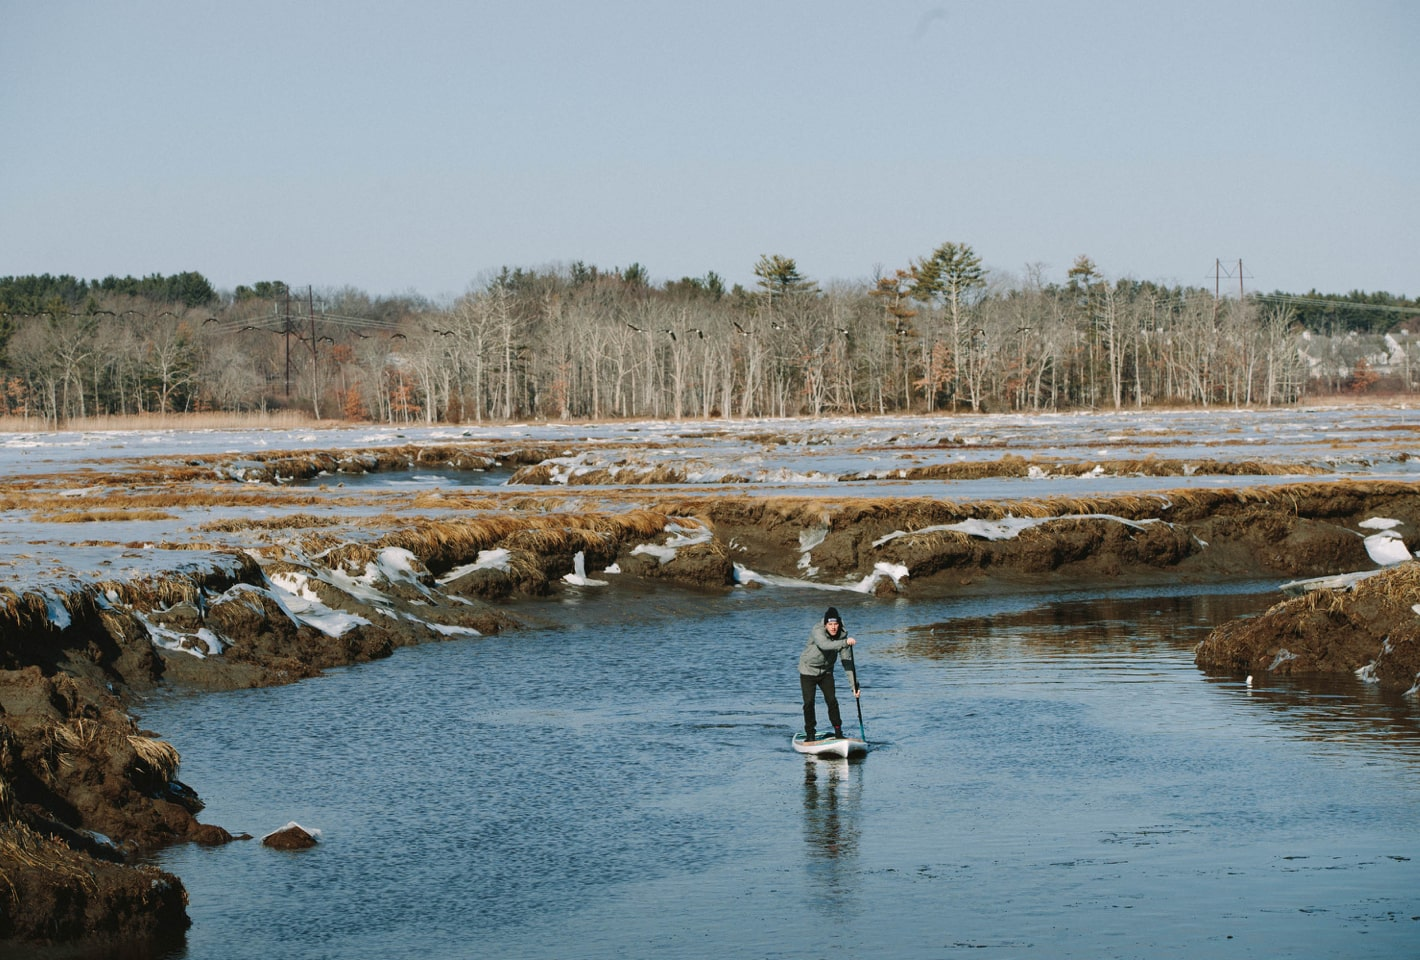 Willis Brown paddling BOTE Rackham paddle board down snowy river